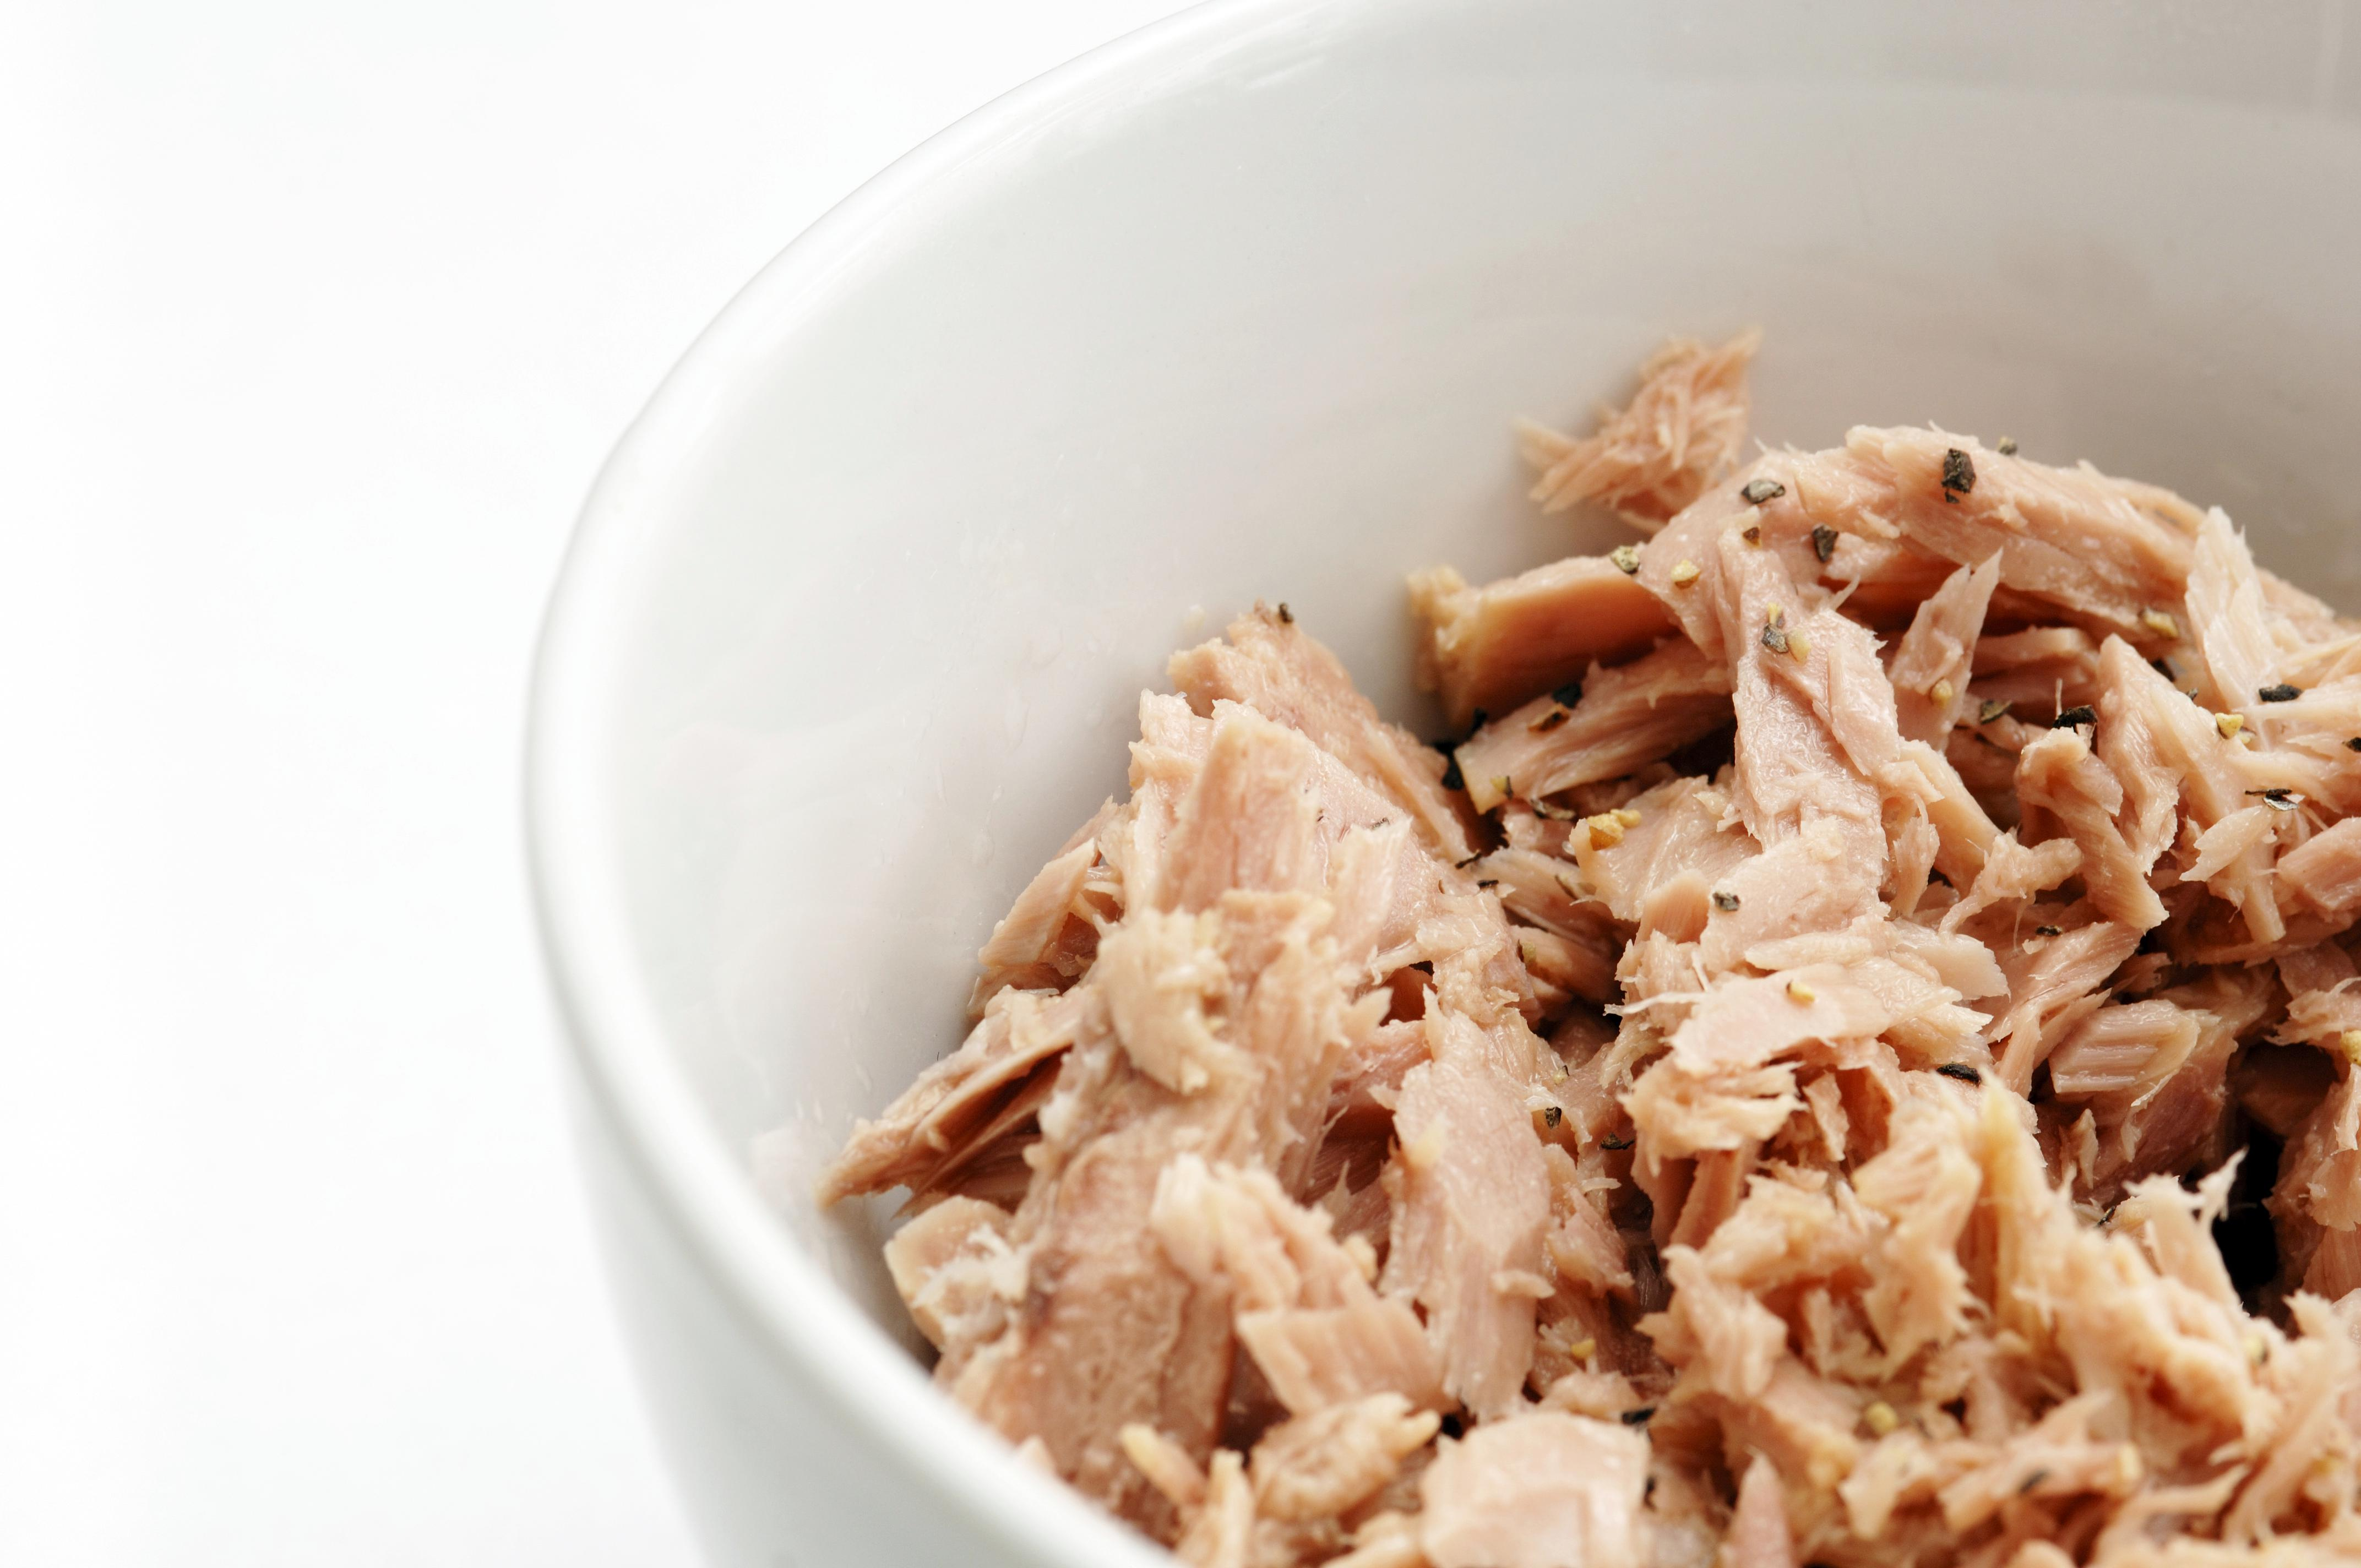 Flaked tuna fish in bowl